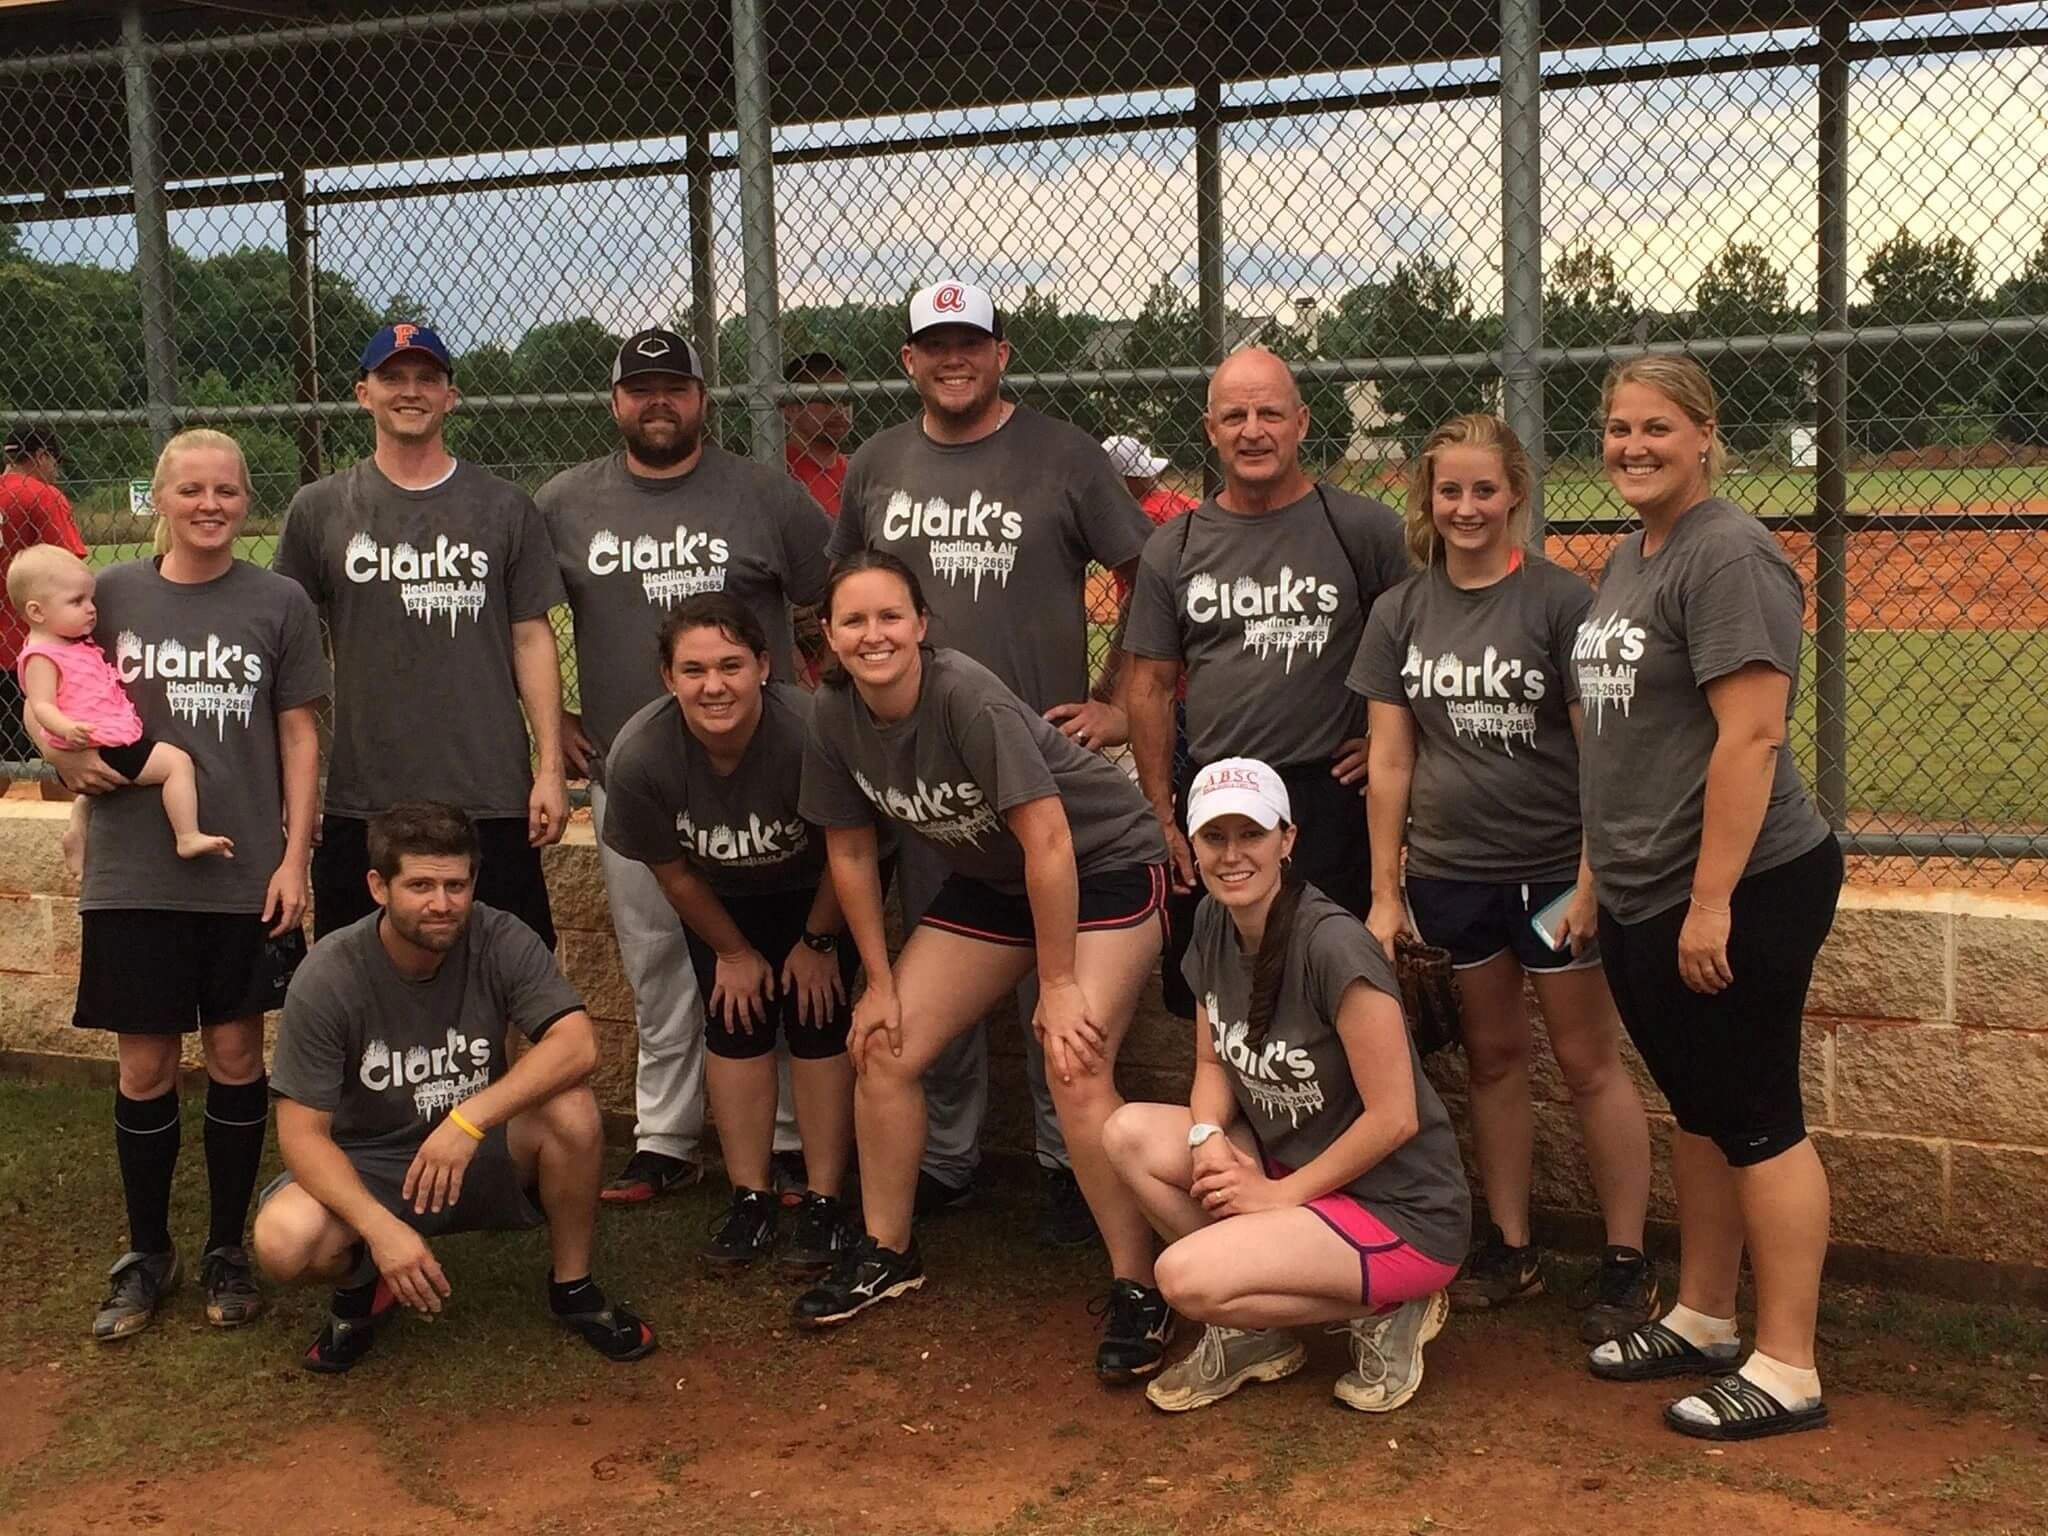 group of people wearing clark's heating and air shirts